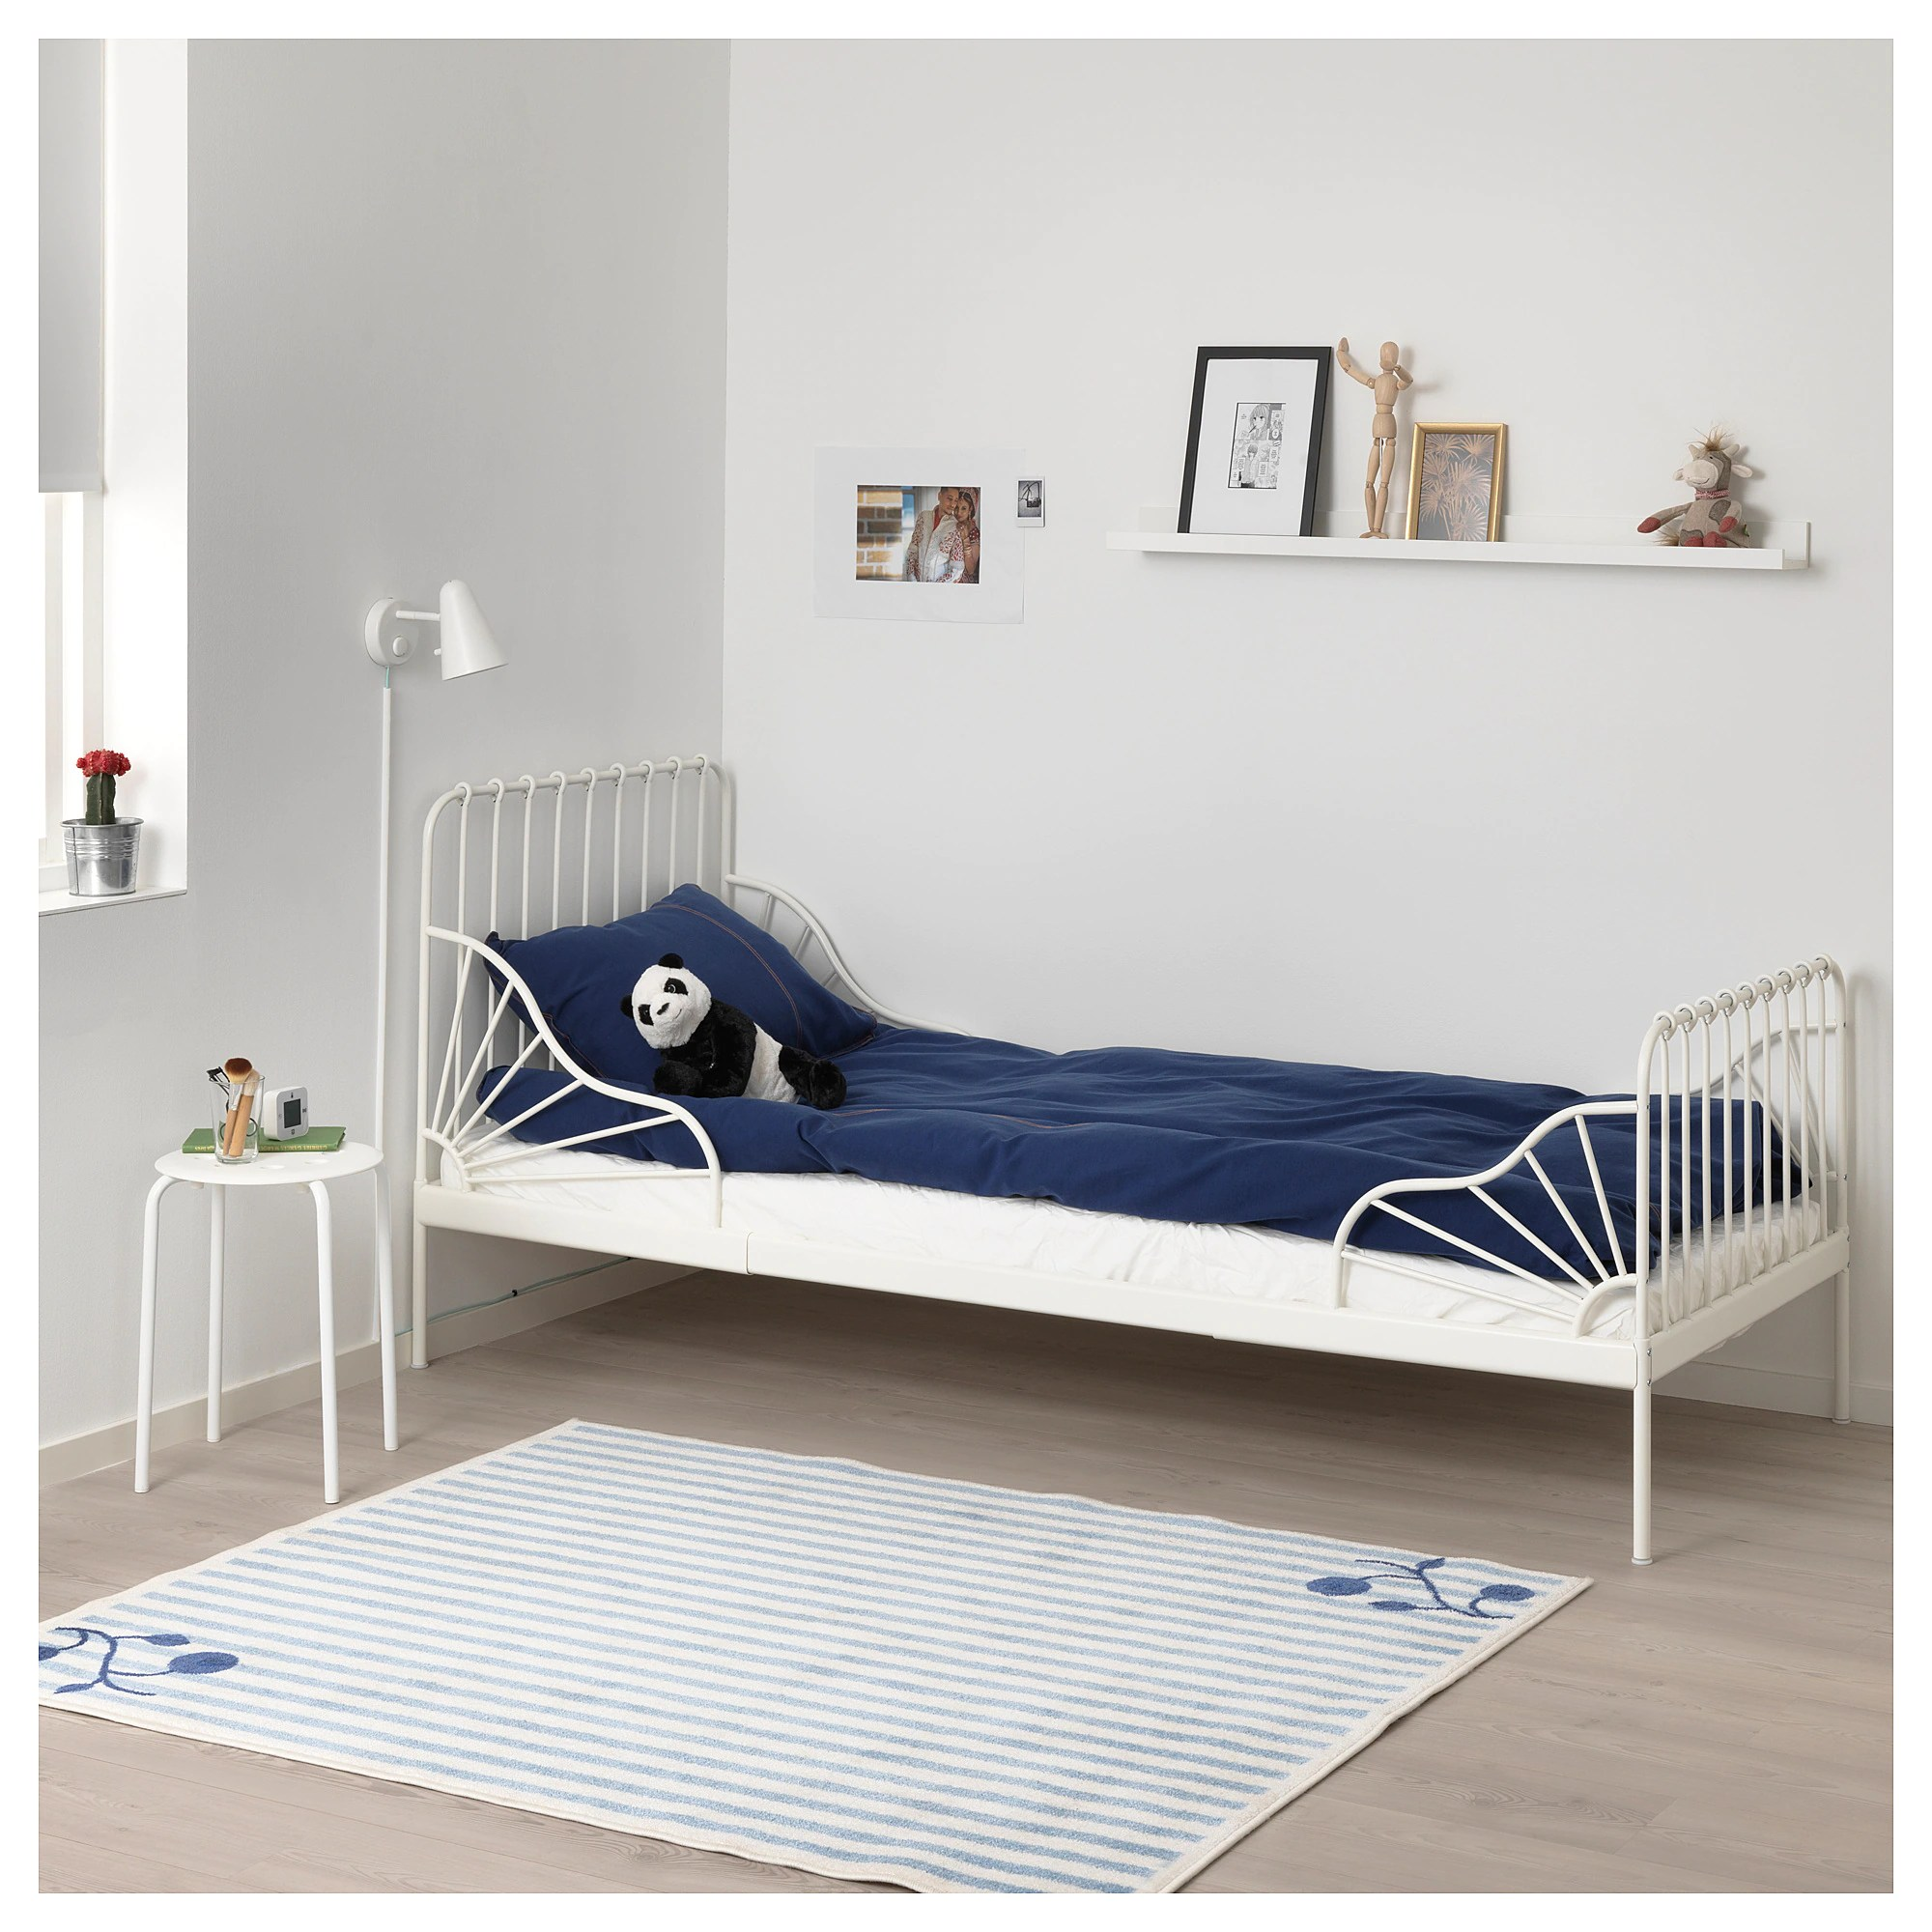 Childrens Beds With Pull Out Bed Underneath Minnen Ext Bed Frame With Slatted Bed Base White